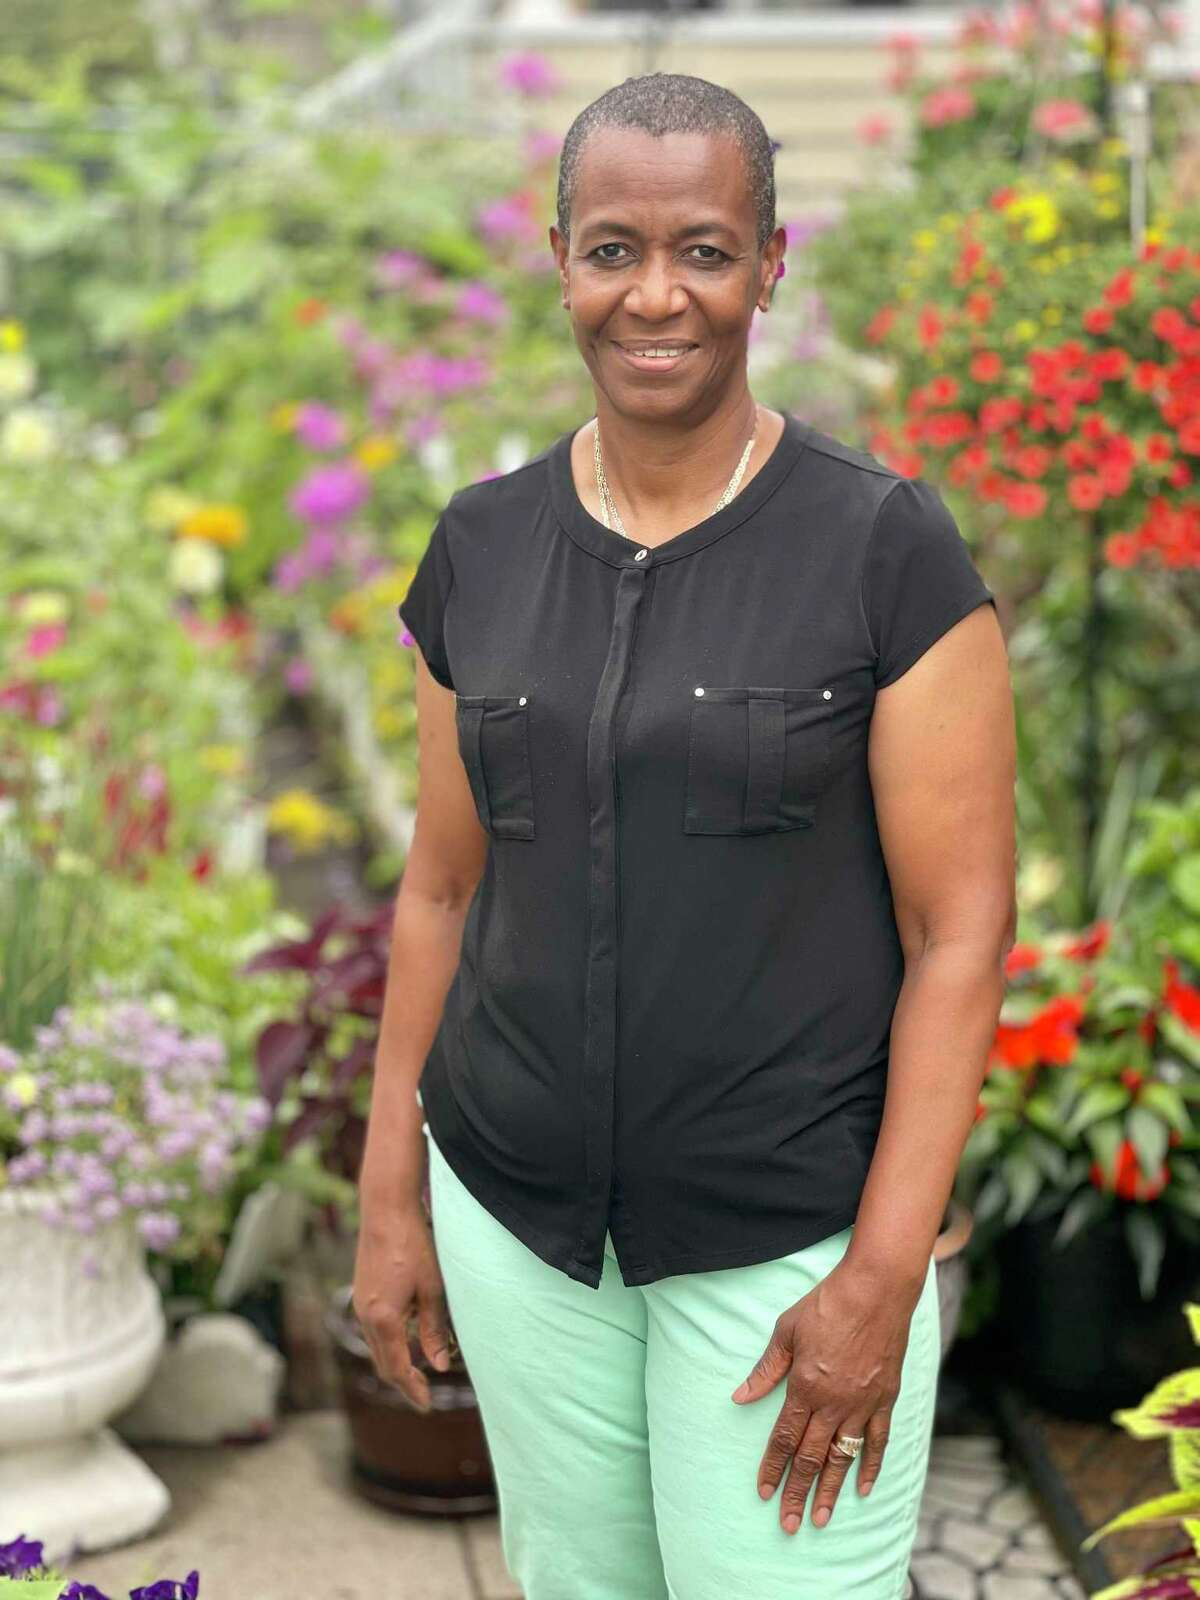 Marie Goodall-Sylvester, 62, of Bridgeport received her first dose of the Pfizer-BioNTech on Aug. 9, 2021.